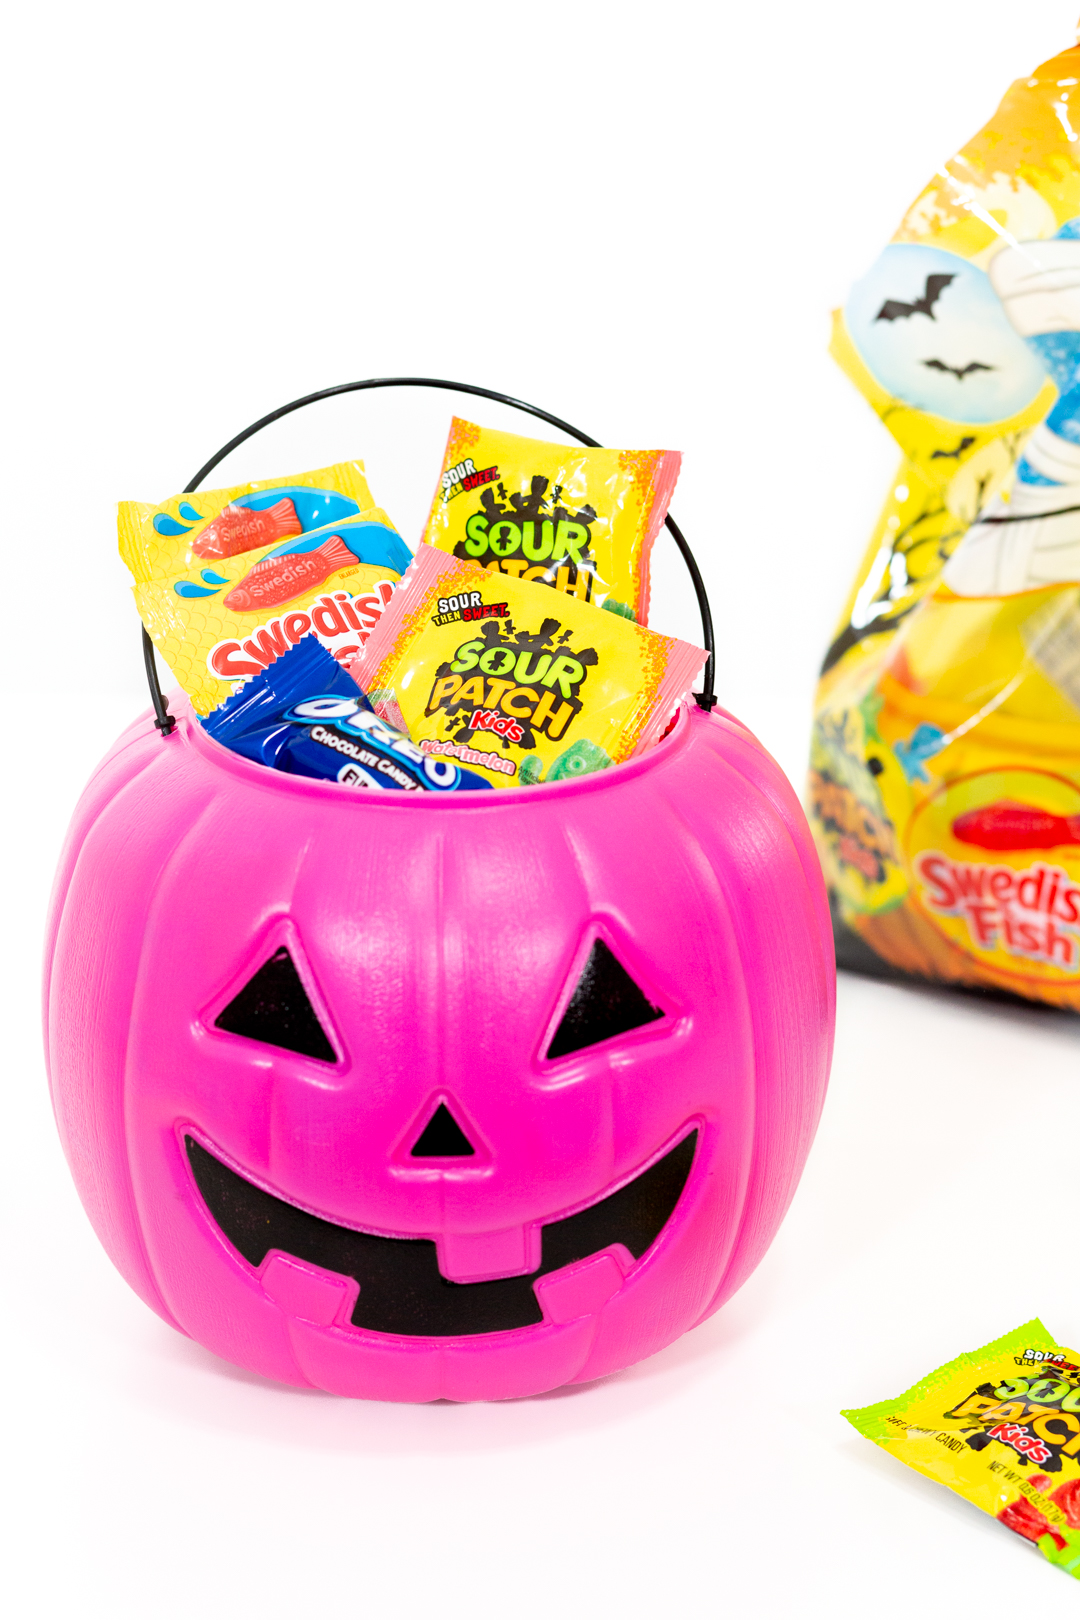 pink jack o'lantern halloween candy basket filled with swedish fish, sour patch kids and oreo candy bars